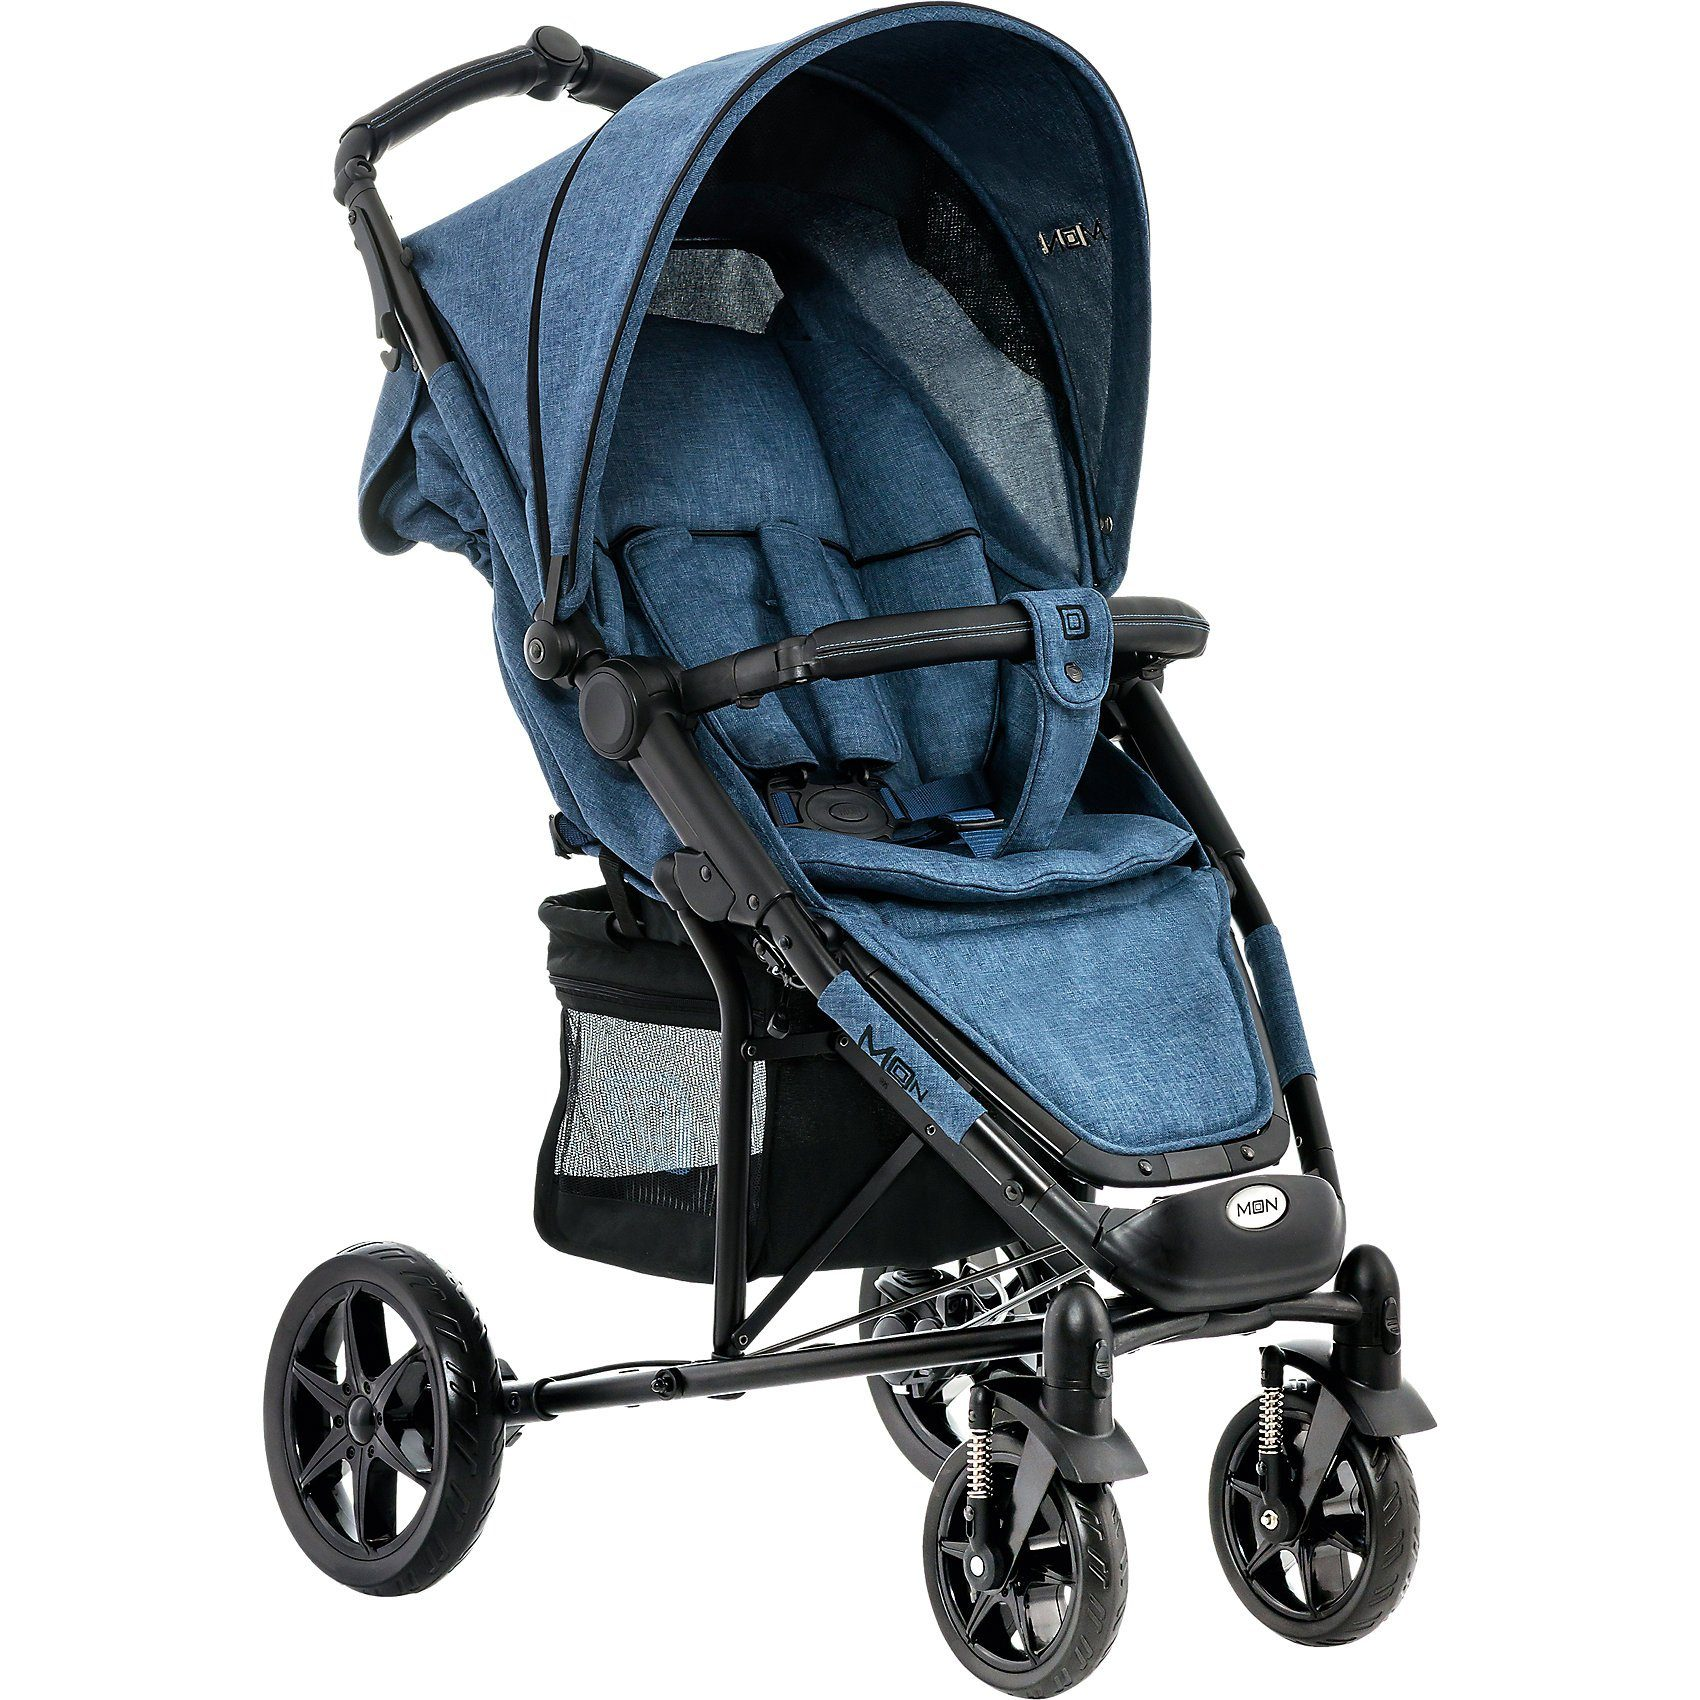 Moon Buggy FLAC City, blue/melange